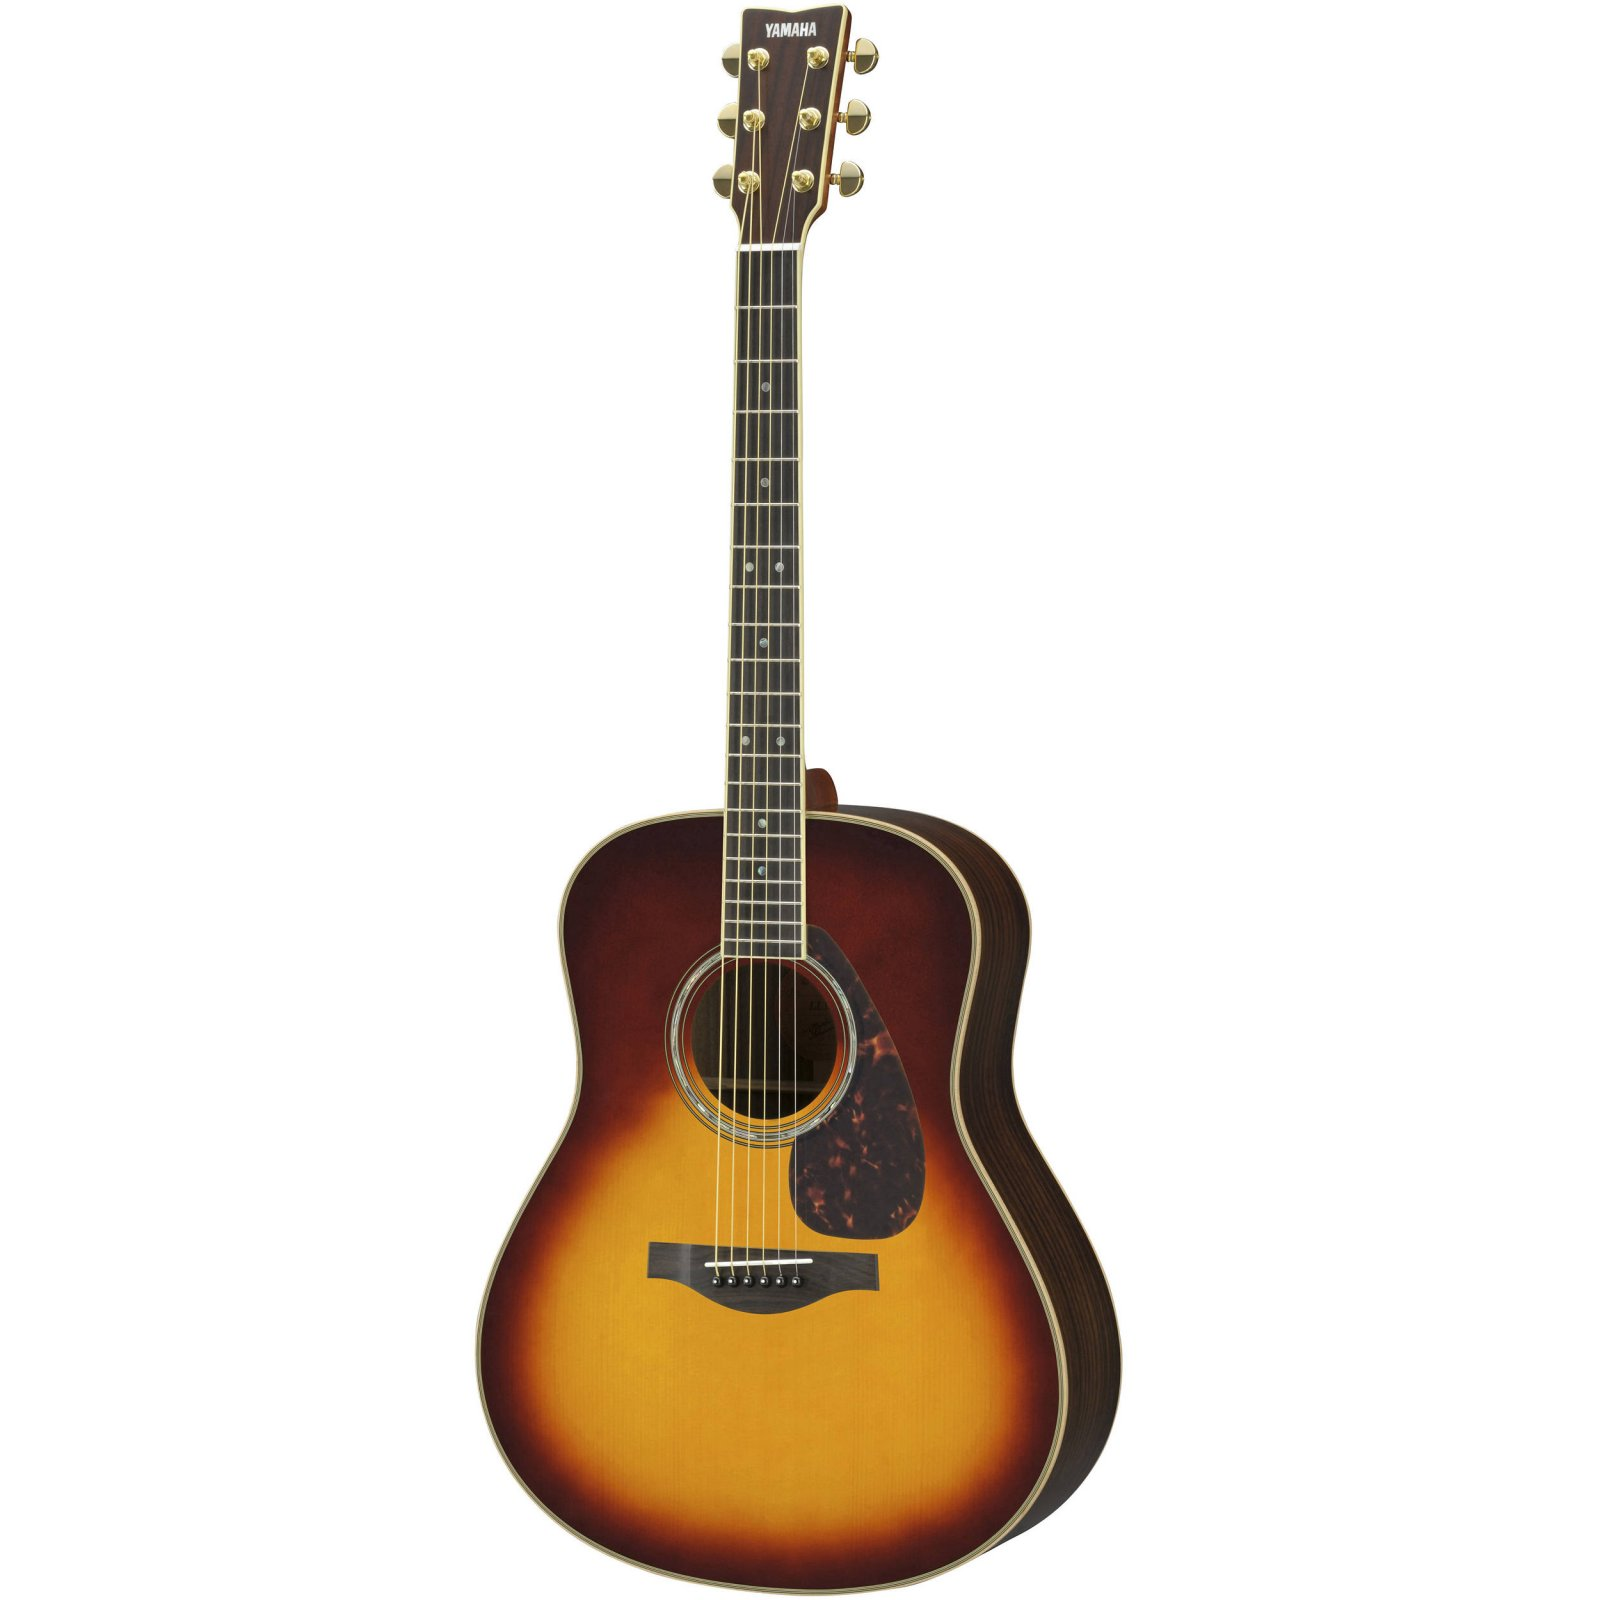 Yamaha LL16BSHB L Series Dreadnought Acoustic Guitar w/Solid Engleman Spruce Top Solid Rosewood B/S-Brown Sunburst w/Hard Bag